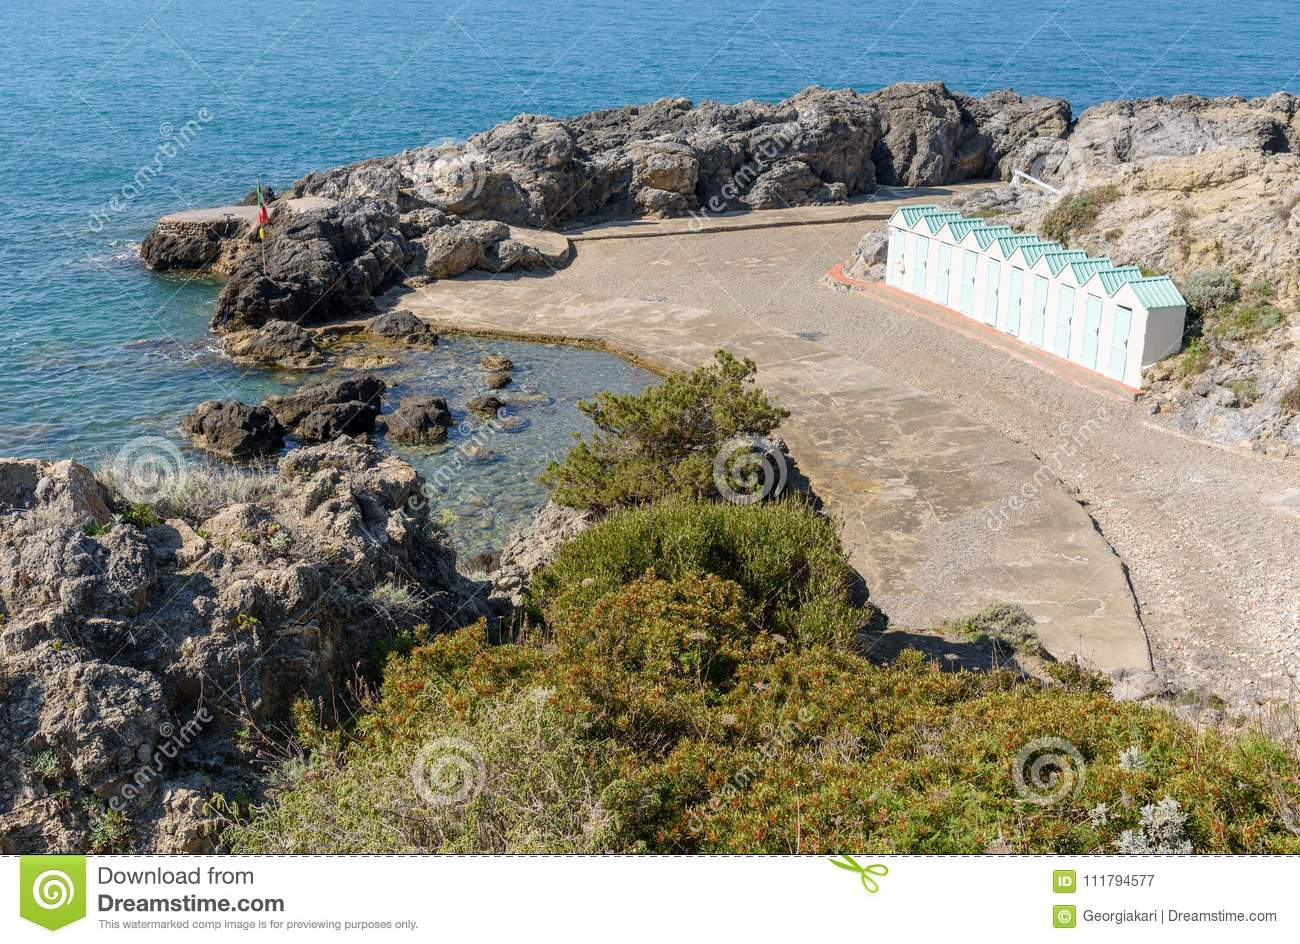 Bagno delle donne beach at talamone tuscany italy stock image image of resort mediterranean - Bagno delle donne talamone ...